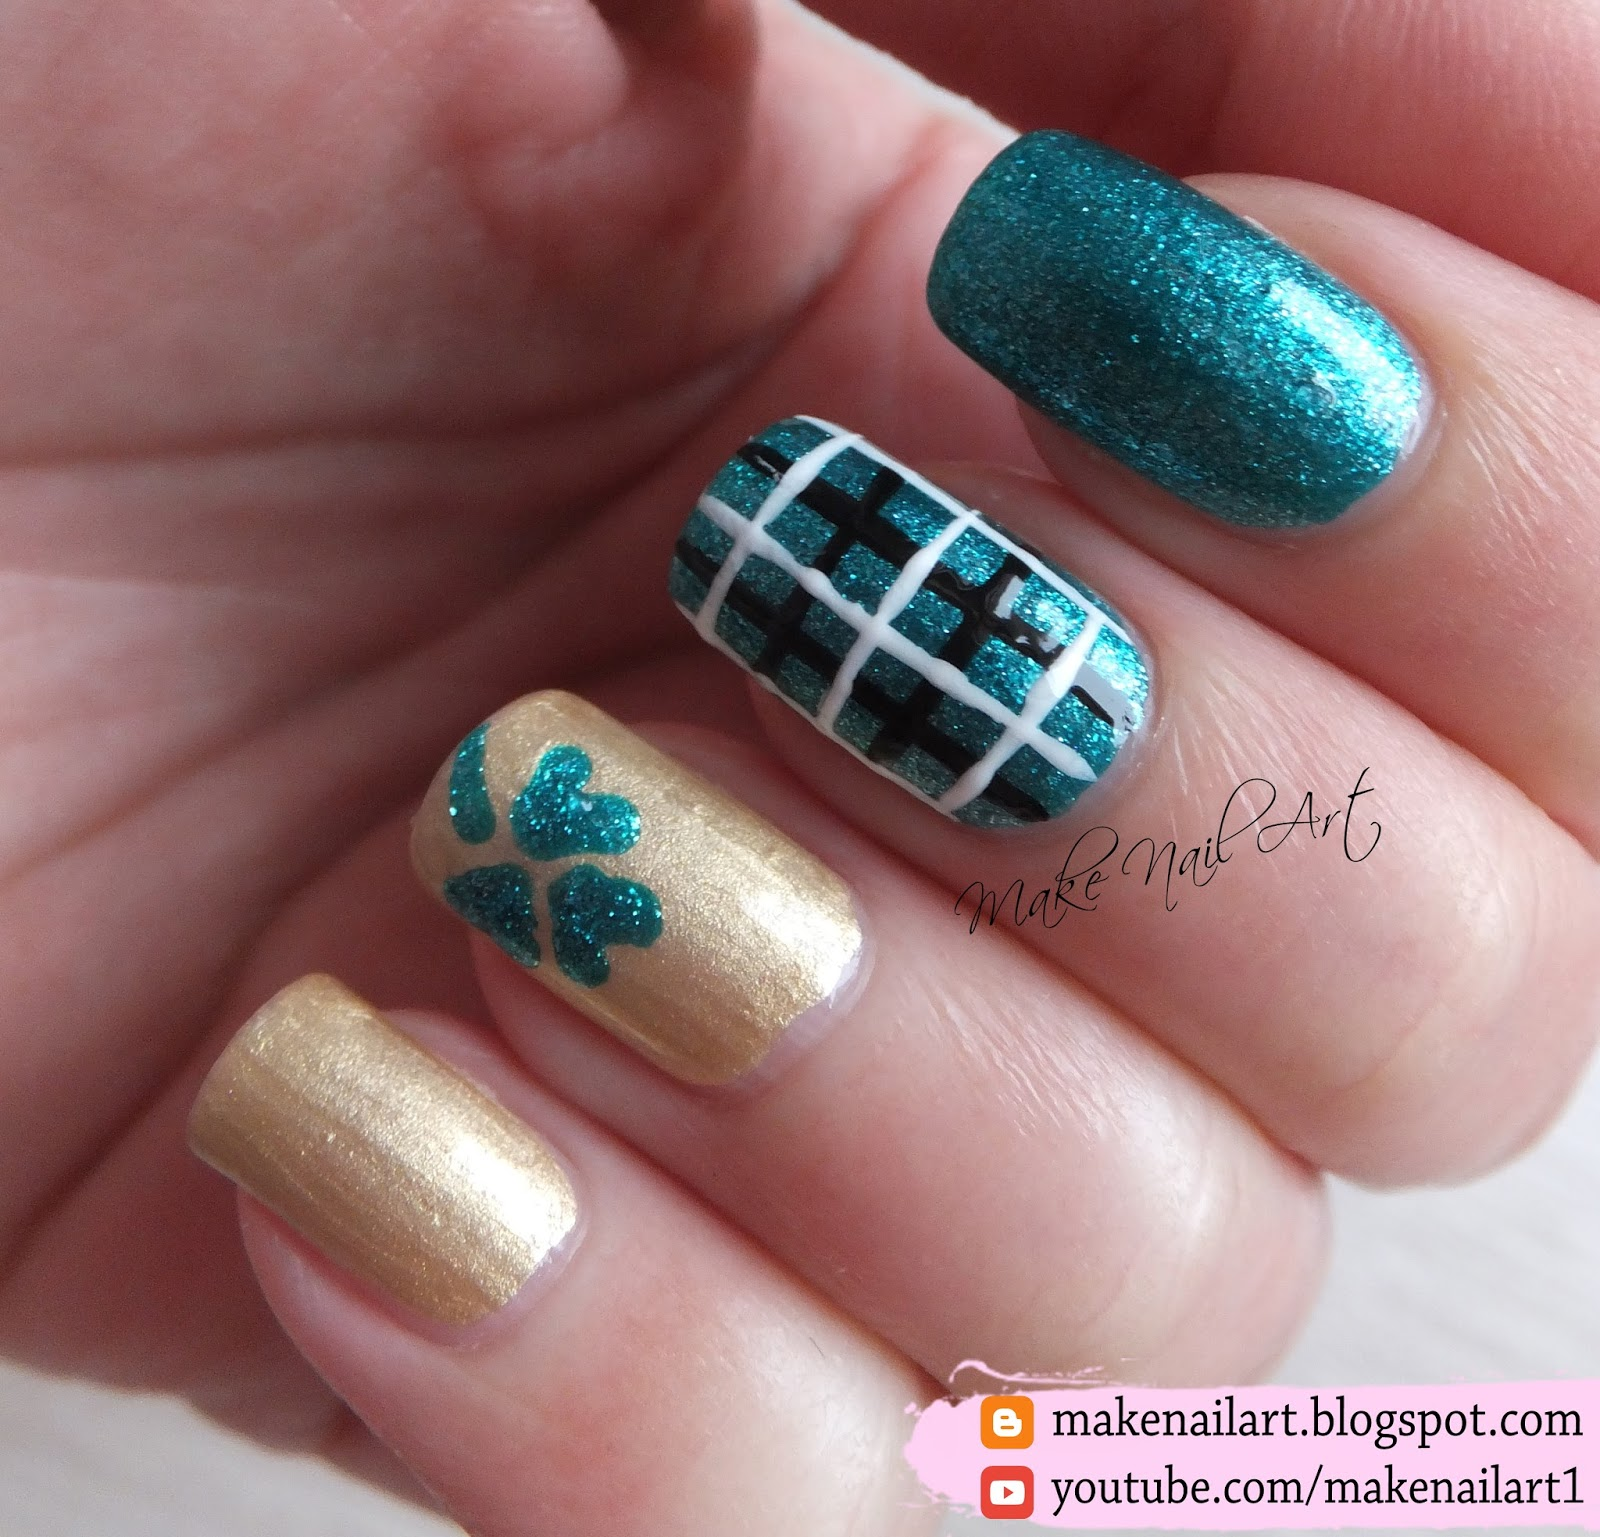 Make Nail Art St Patricks Day Easy Plaid And Shamrock Nail Art